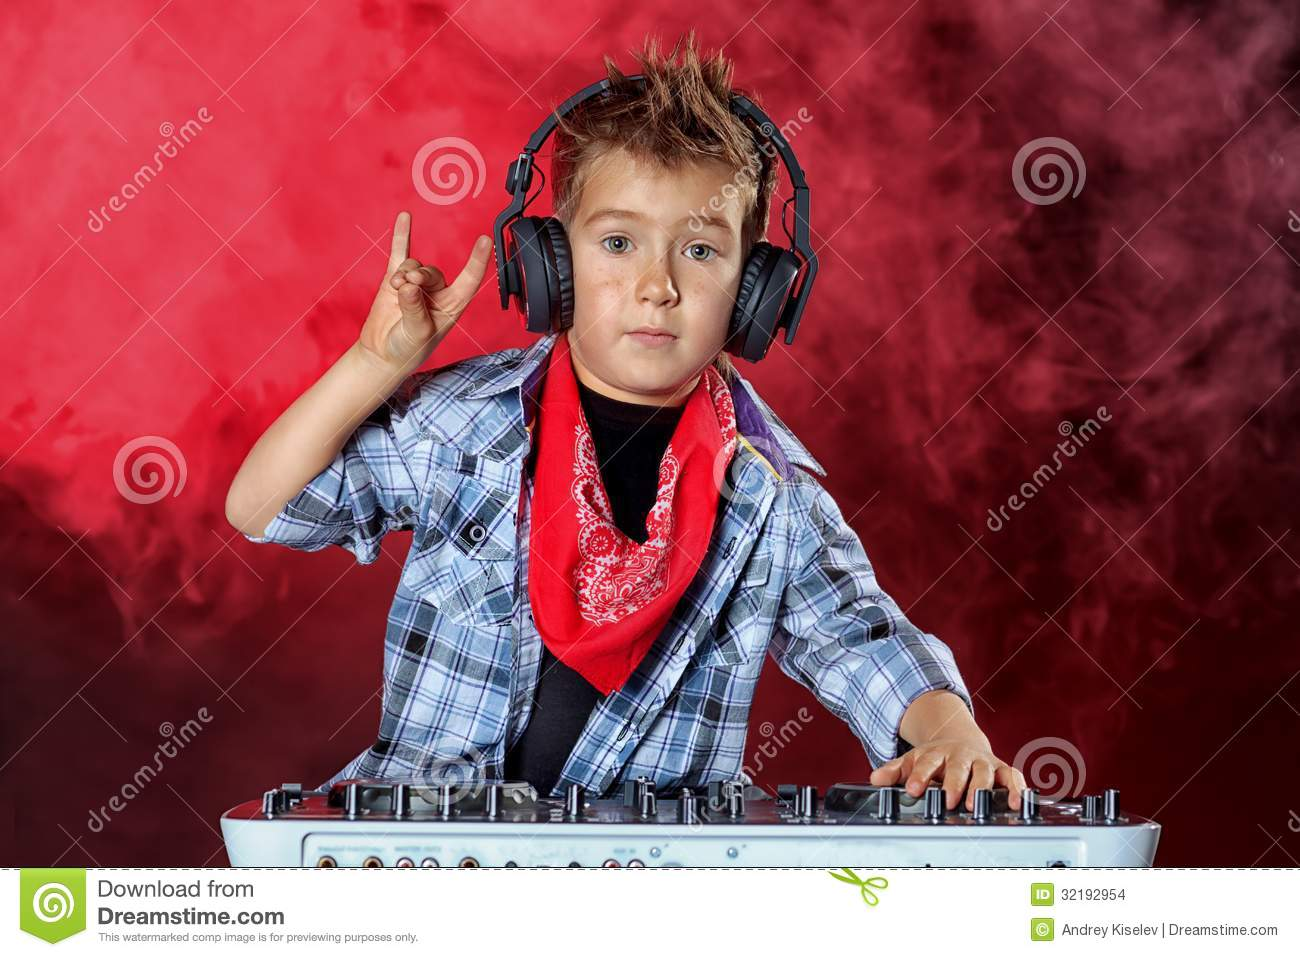 Cool Dj Boy Stock Photo Image Of Little Mixer Artist